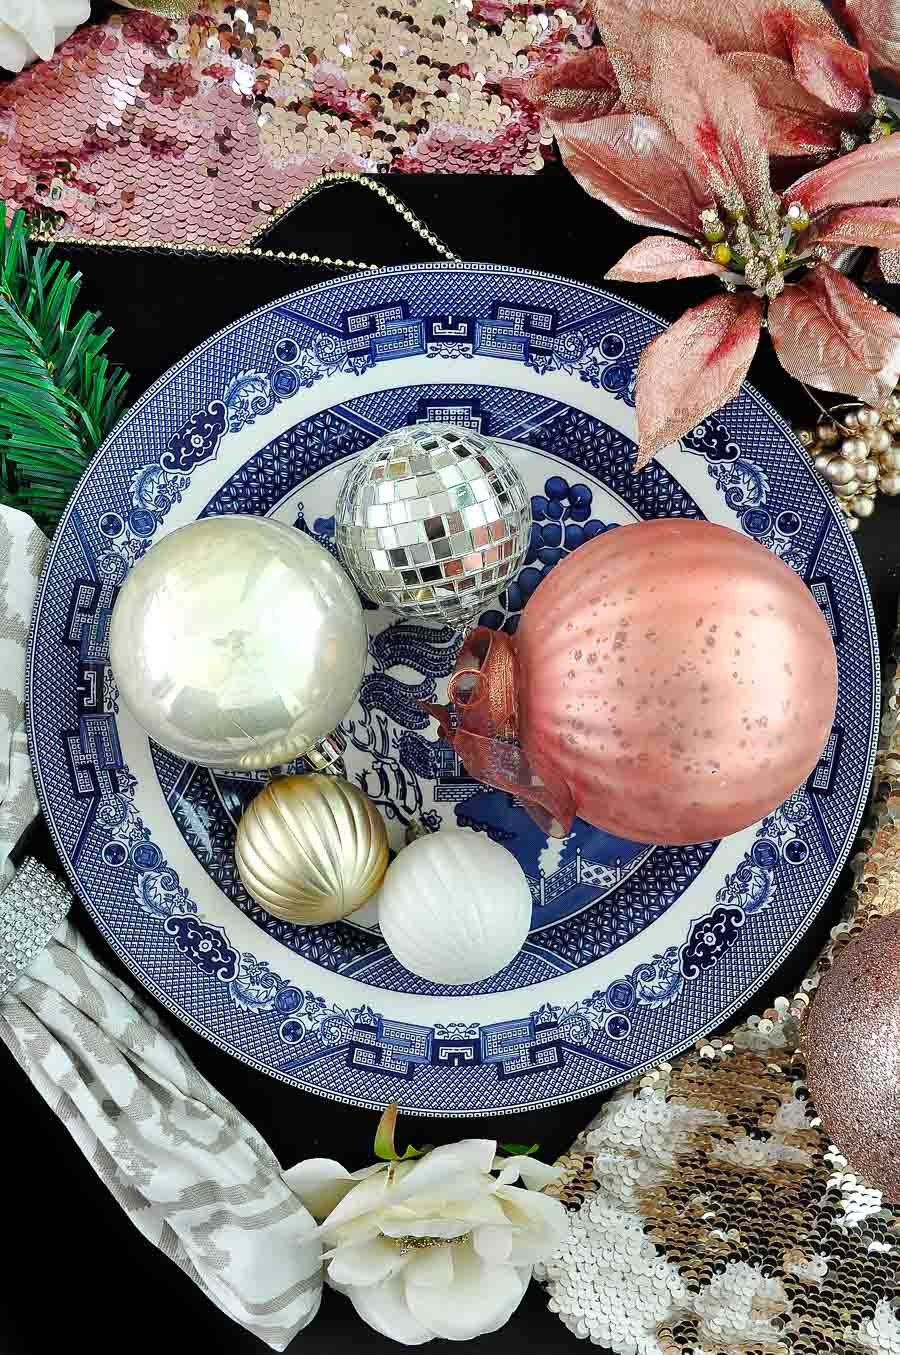 Blush & Chinoiserie Christmas Decor Theme: eclectic with gold, silver and white plus ginger jars and sequins make for glam holiday decor.